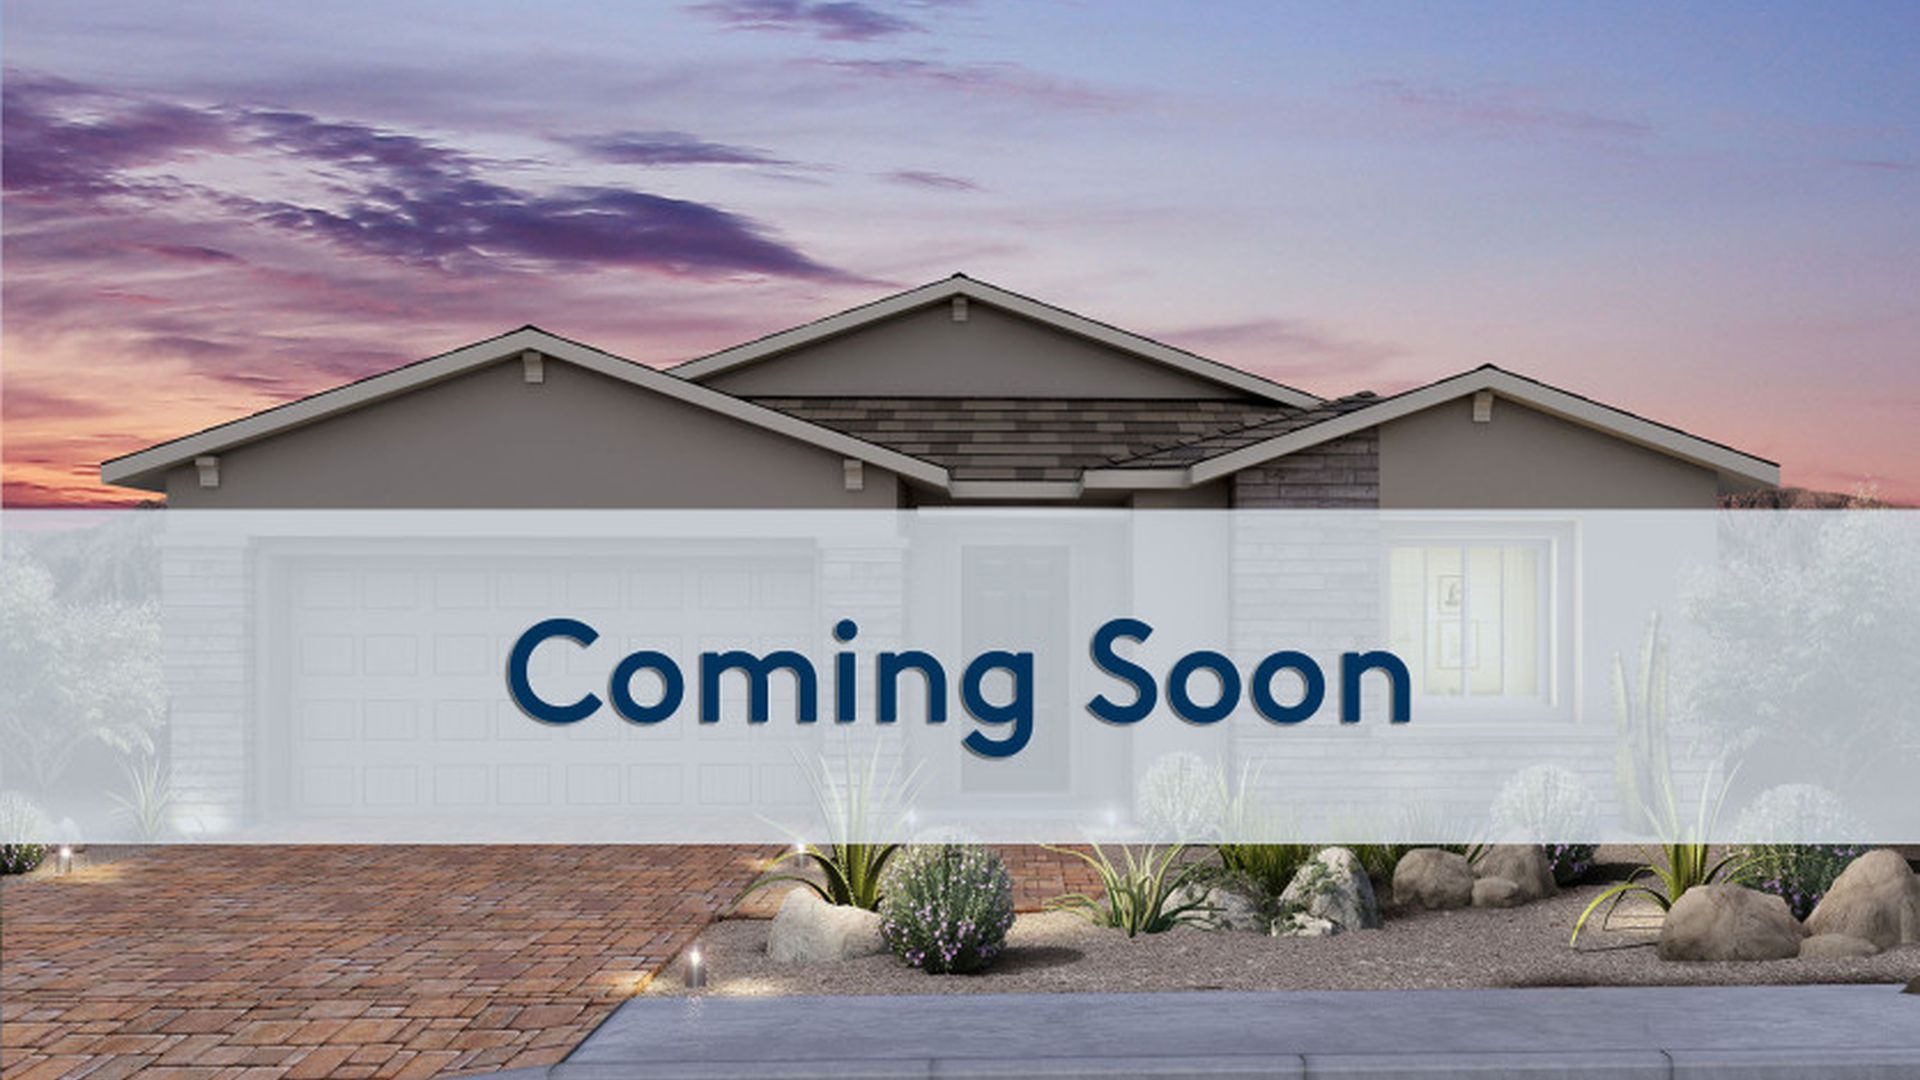 New Construction Homes in Las Vegas NV | Zillow on home contractor signs, home service signs, home financing signs, family signs, home business signs, home builders signs, pest control signs, landscaping signs, home decor signs, mold remediation signs, home health signs, bathrooms signs, home cooking signs, home security signs, plumbing signs, general signs, home winterization signs, renovations signs, home finance signs, hvac signs,